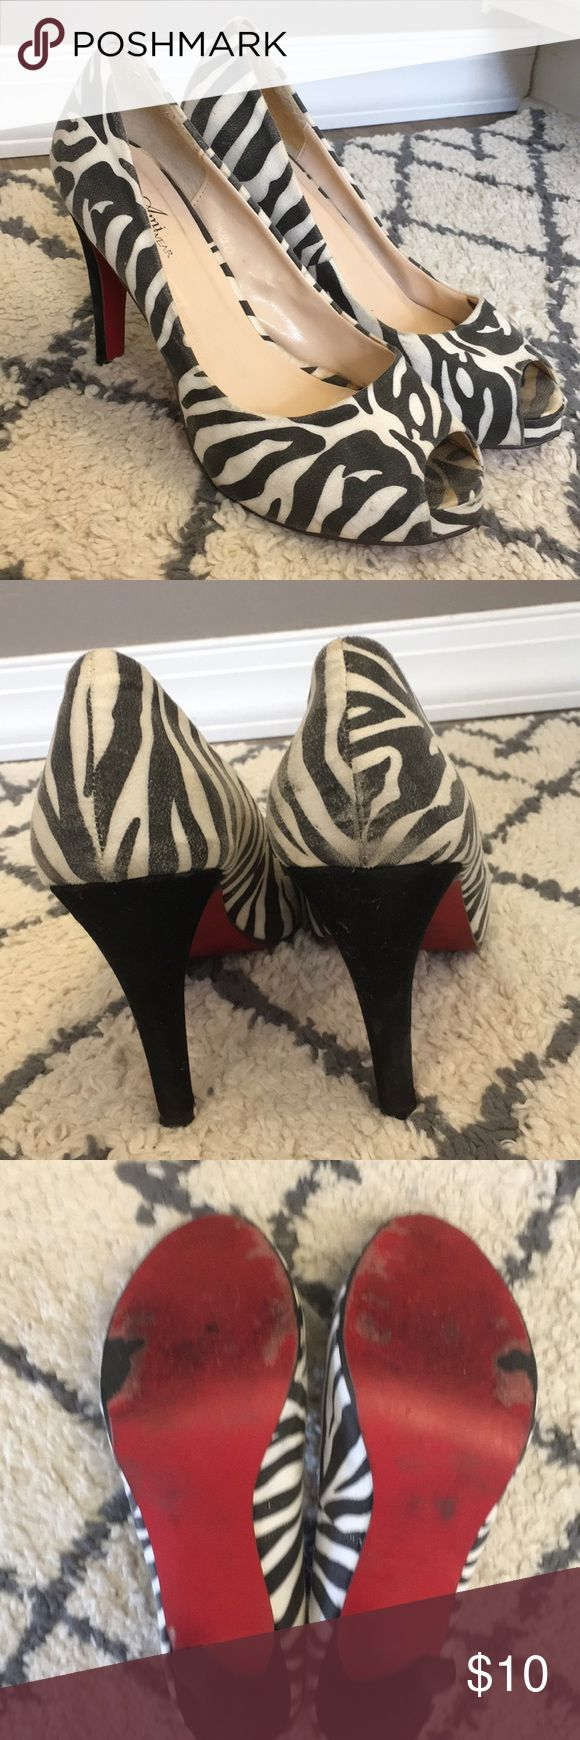 Zebra open toe heels with red bottoms Zebra print open toe heels with red bottoms. They are used but have lots of life left in them. Really comfortable! Ami Clubwear Shoes Heels